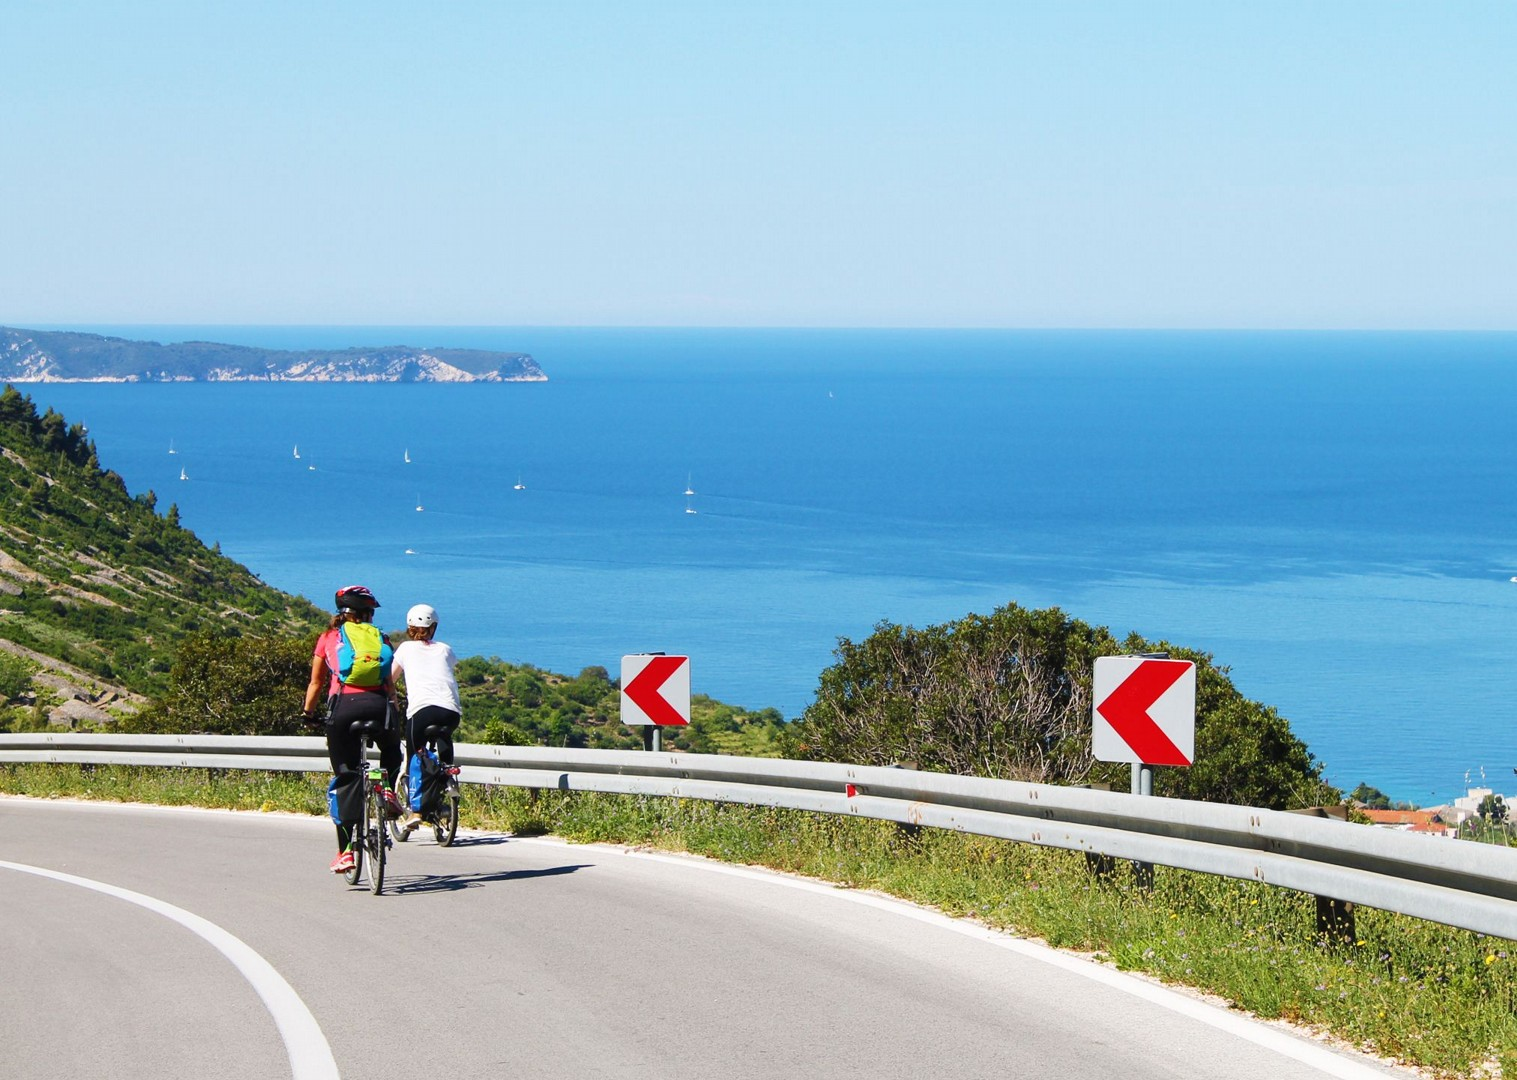 cycle-through-croatia-bike-and-boat-holiday.jpg - Croatia - Dalmatian National Parks and Islands - Bike and Boat Holiday - Leisure Cycling